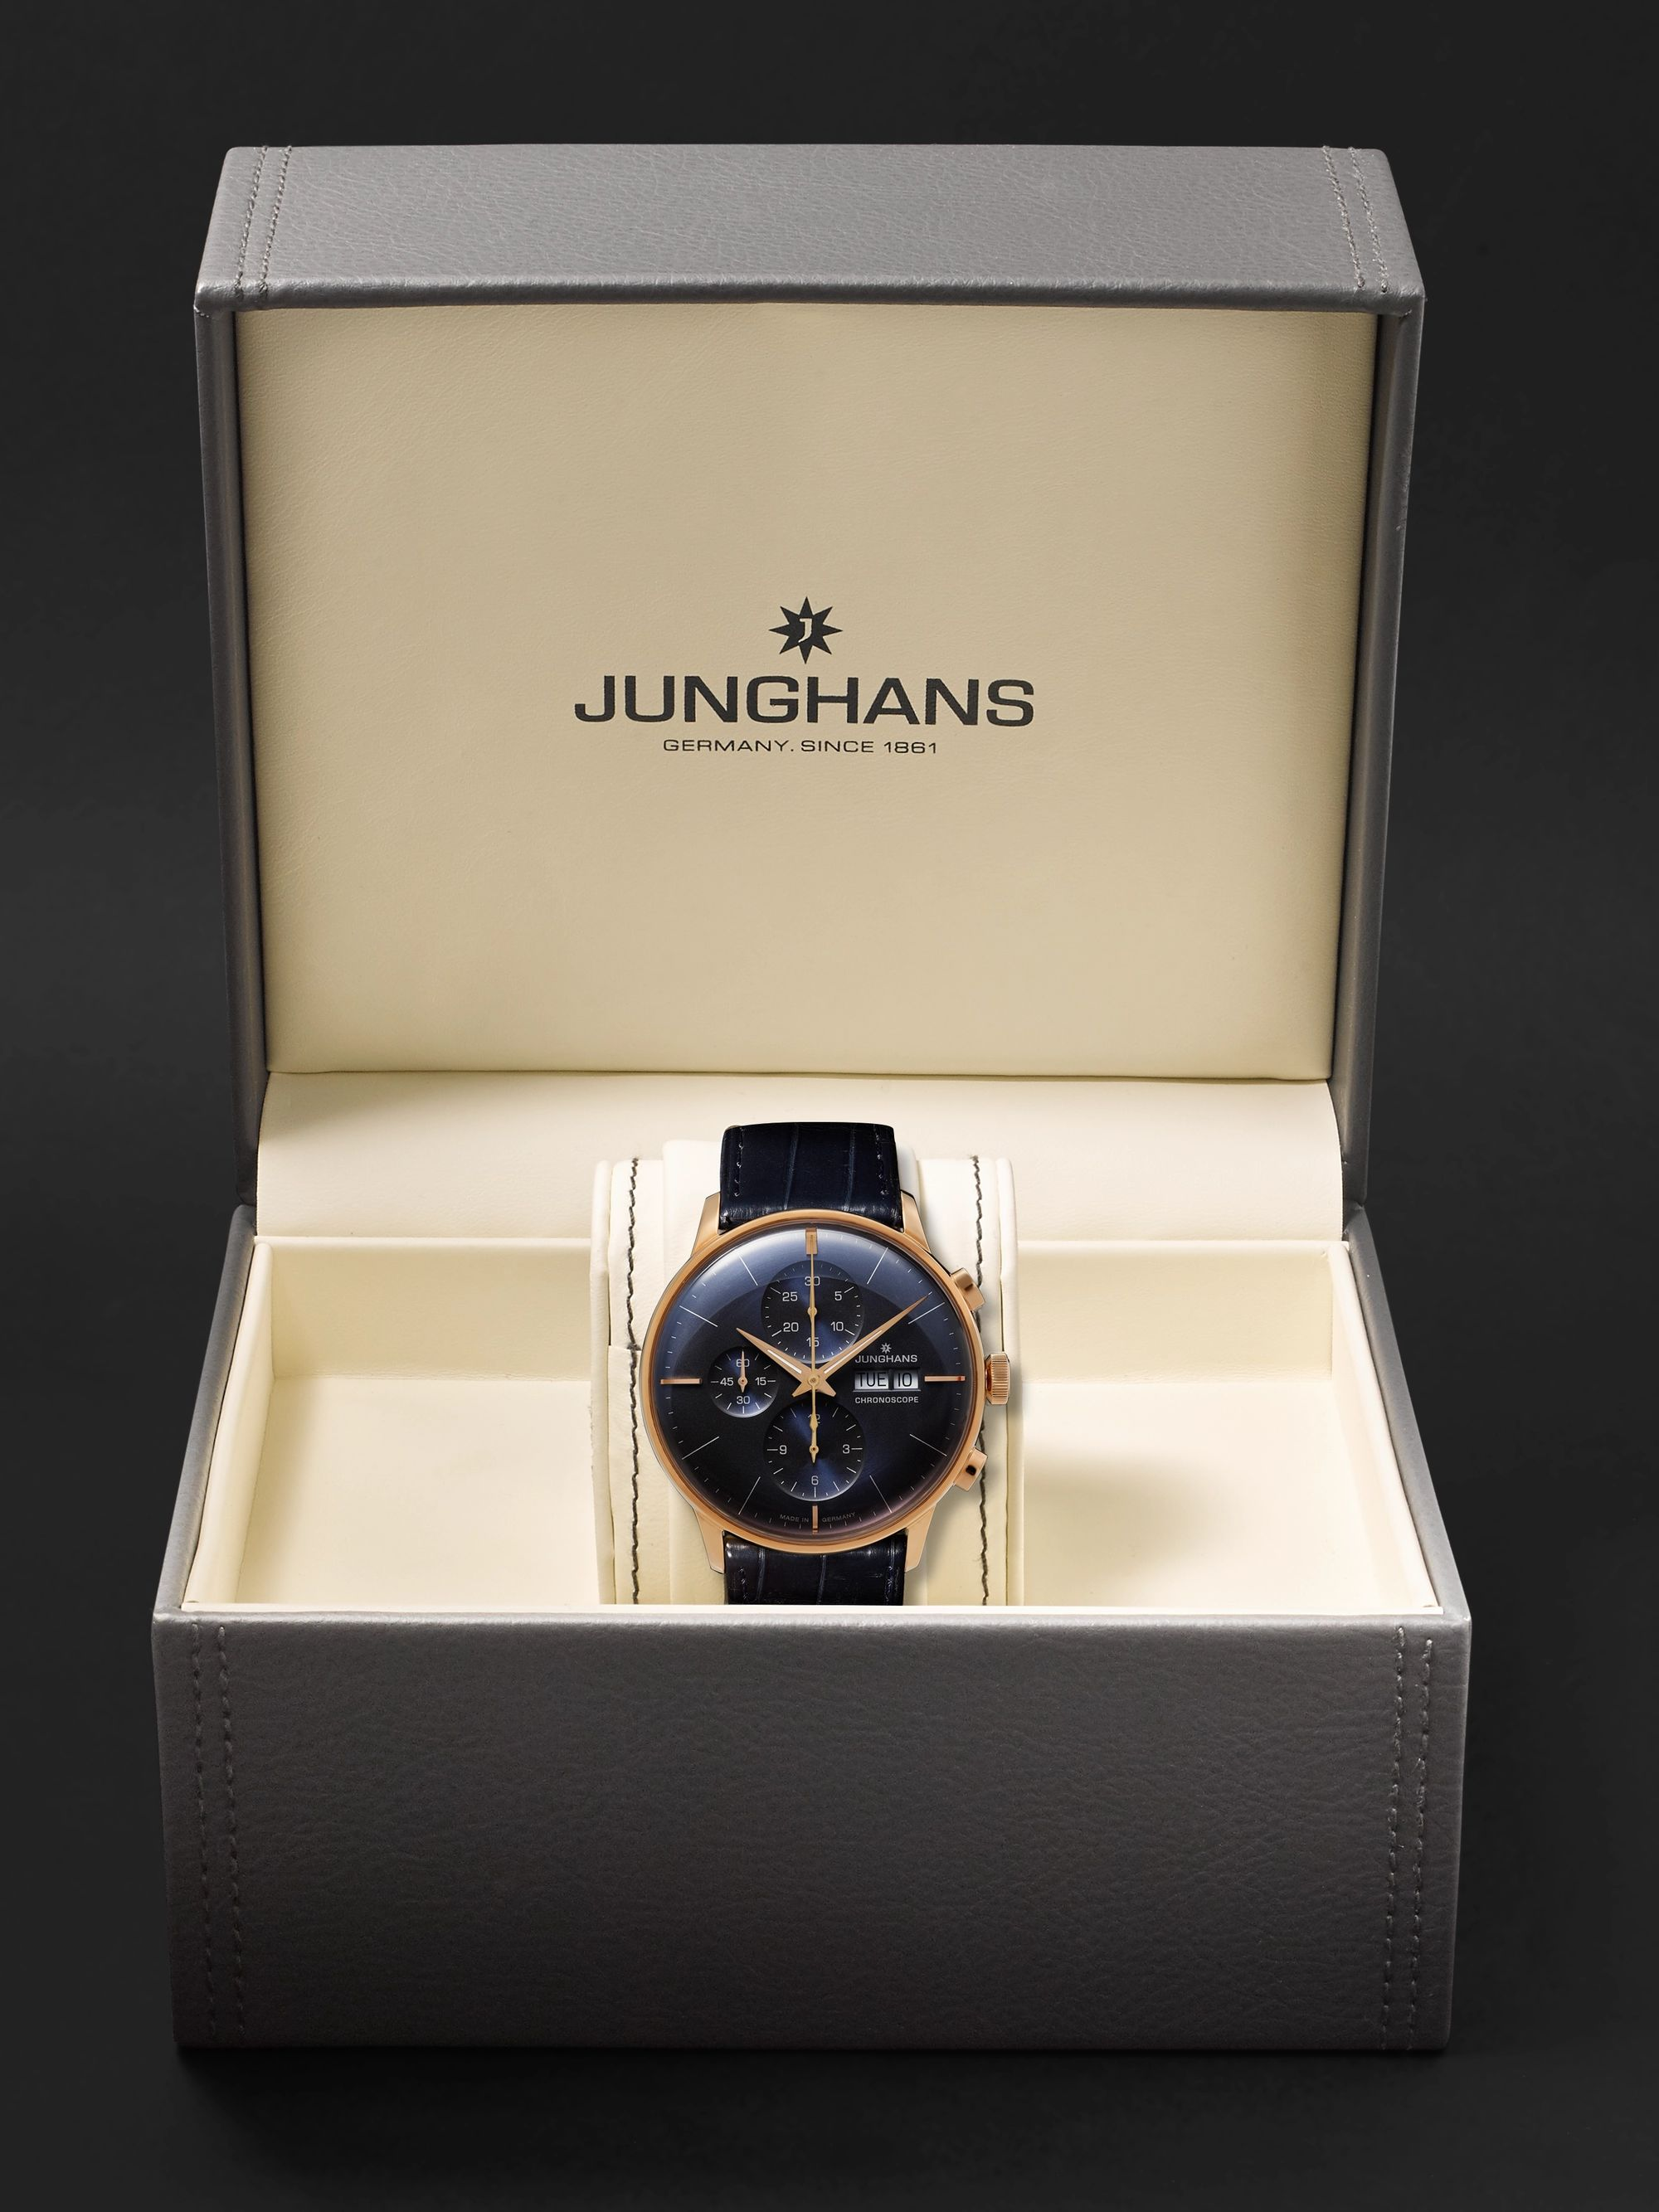 Junghans Meister Automatic Chronoscope 40mm Gold-Tone and Alligator Watch, Ref. No. 027/7924.01